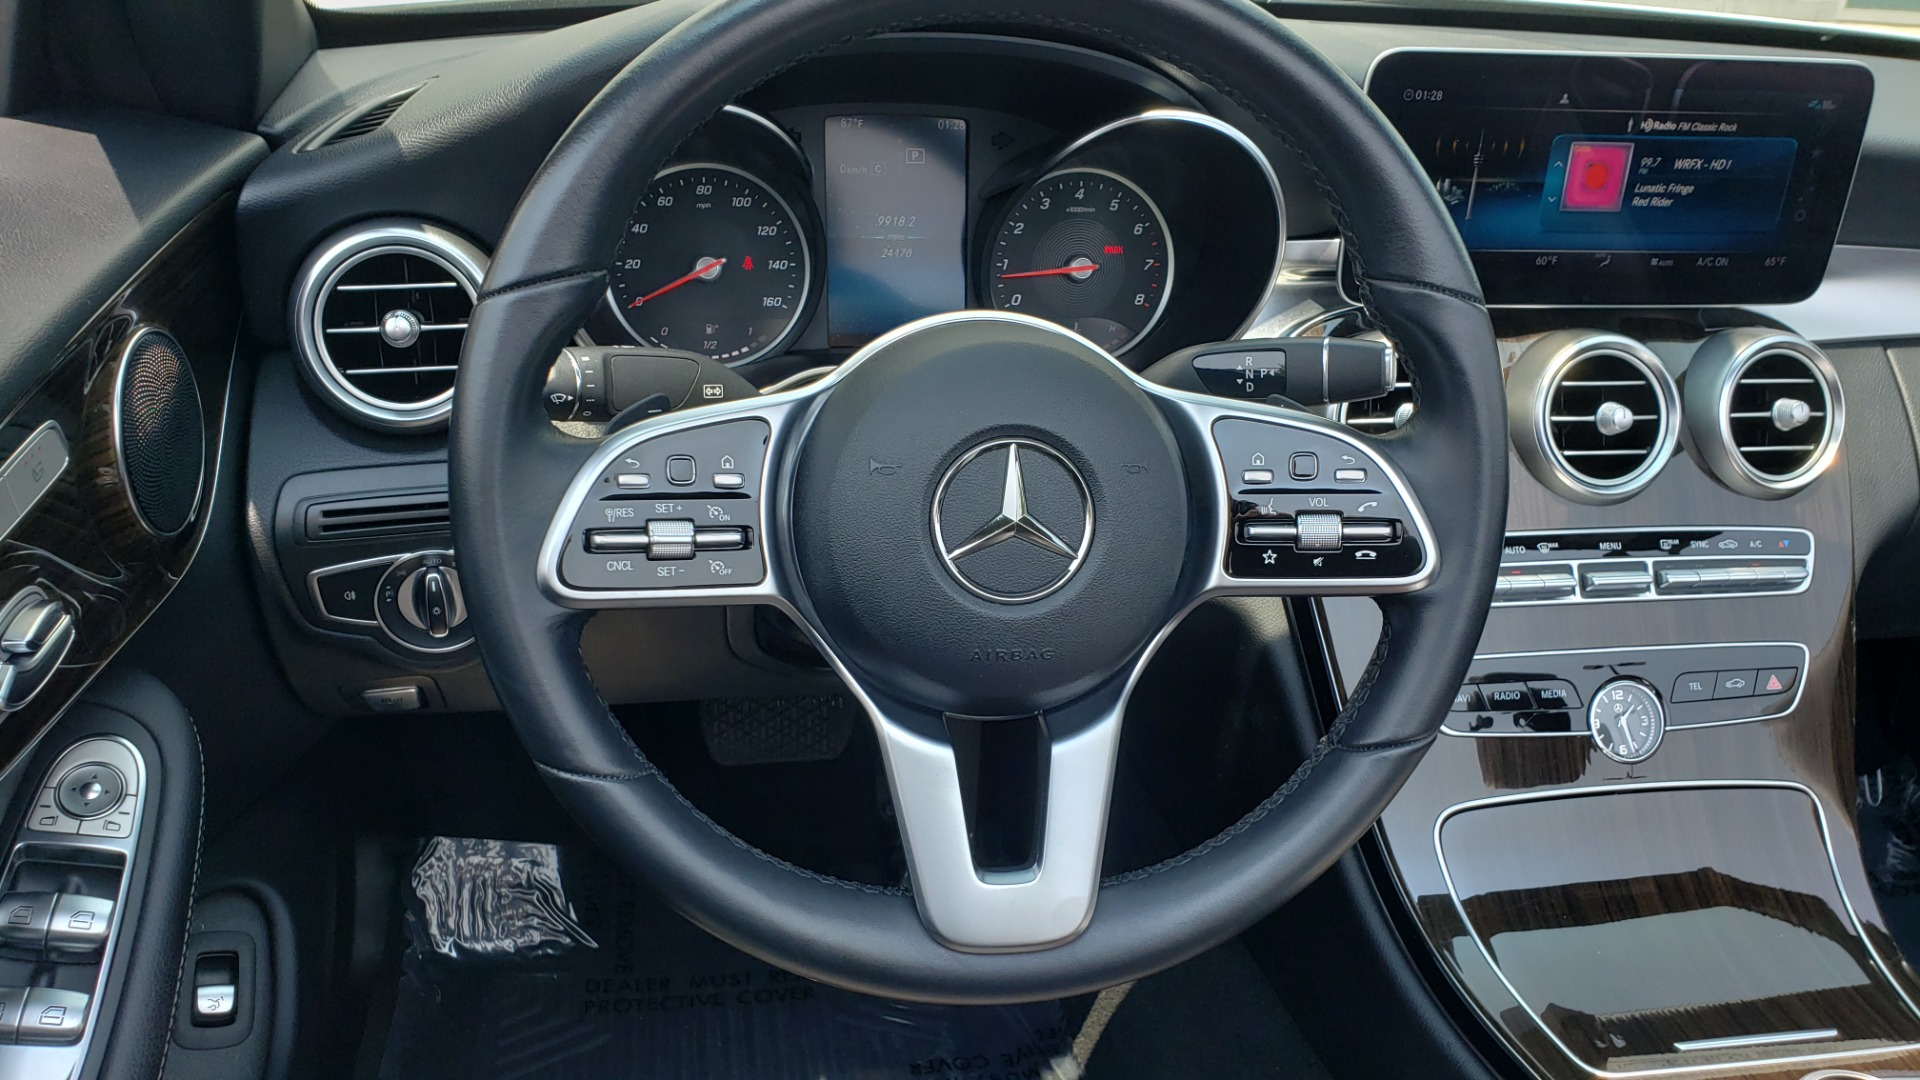 Used 2019 Mercedes-Benz C-CLASS C 300 CABRIOLET 2.0L / AUTO / NAV / HD RADIO / REARVIEW for sale $46,995 at Formula Imports in Charlotte NC 28227 42